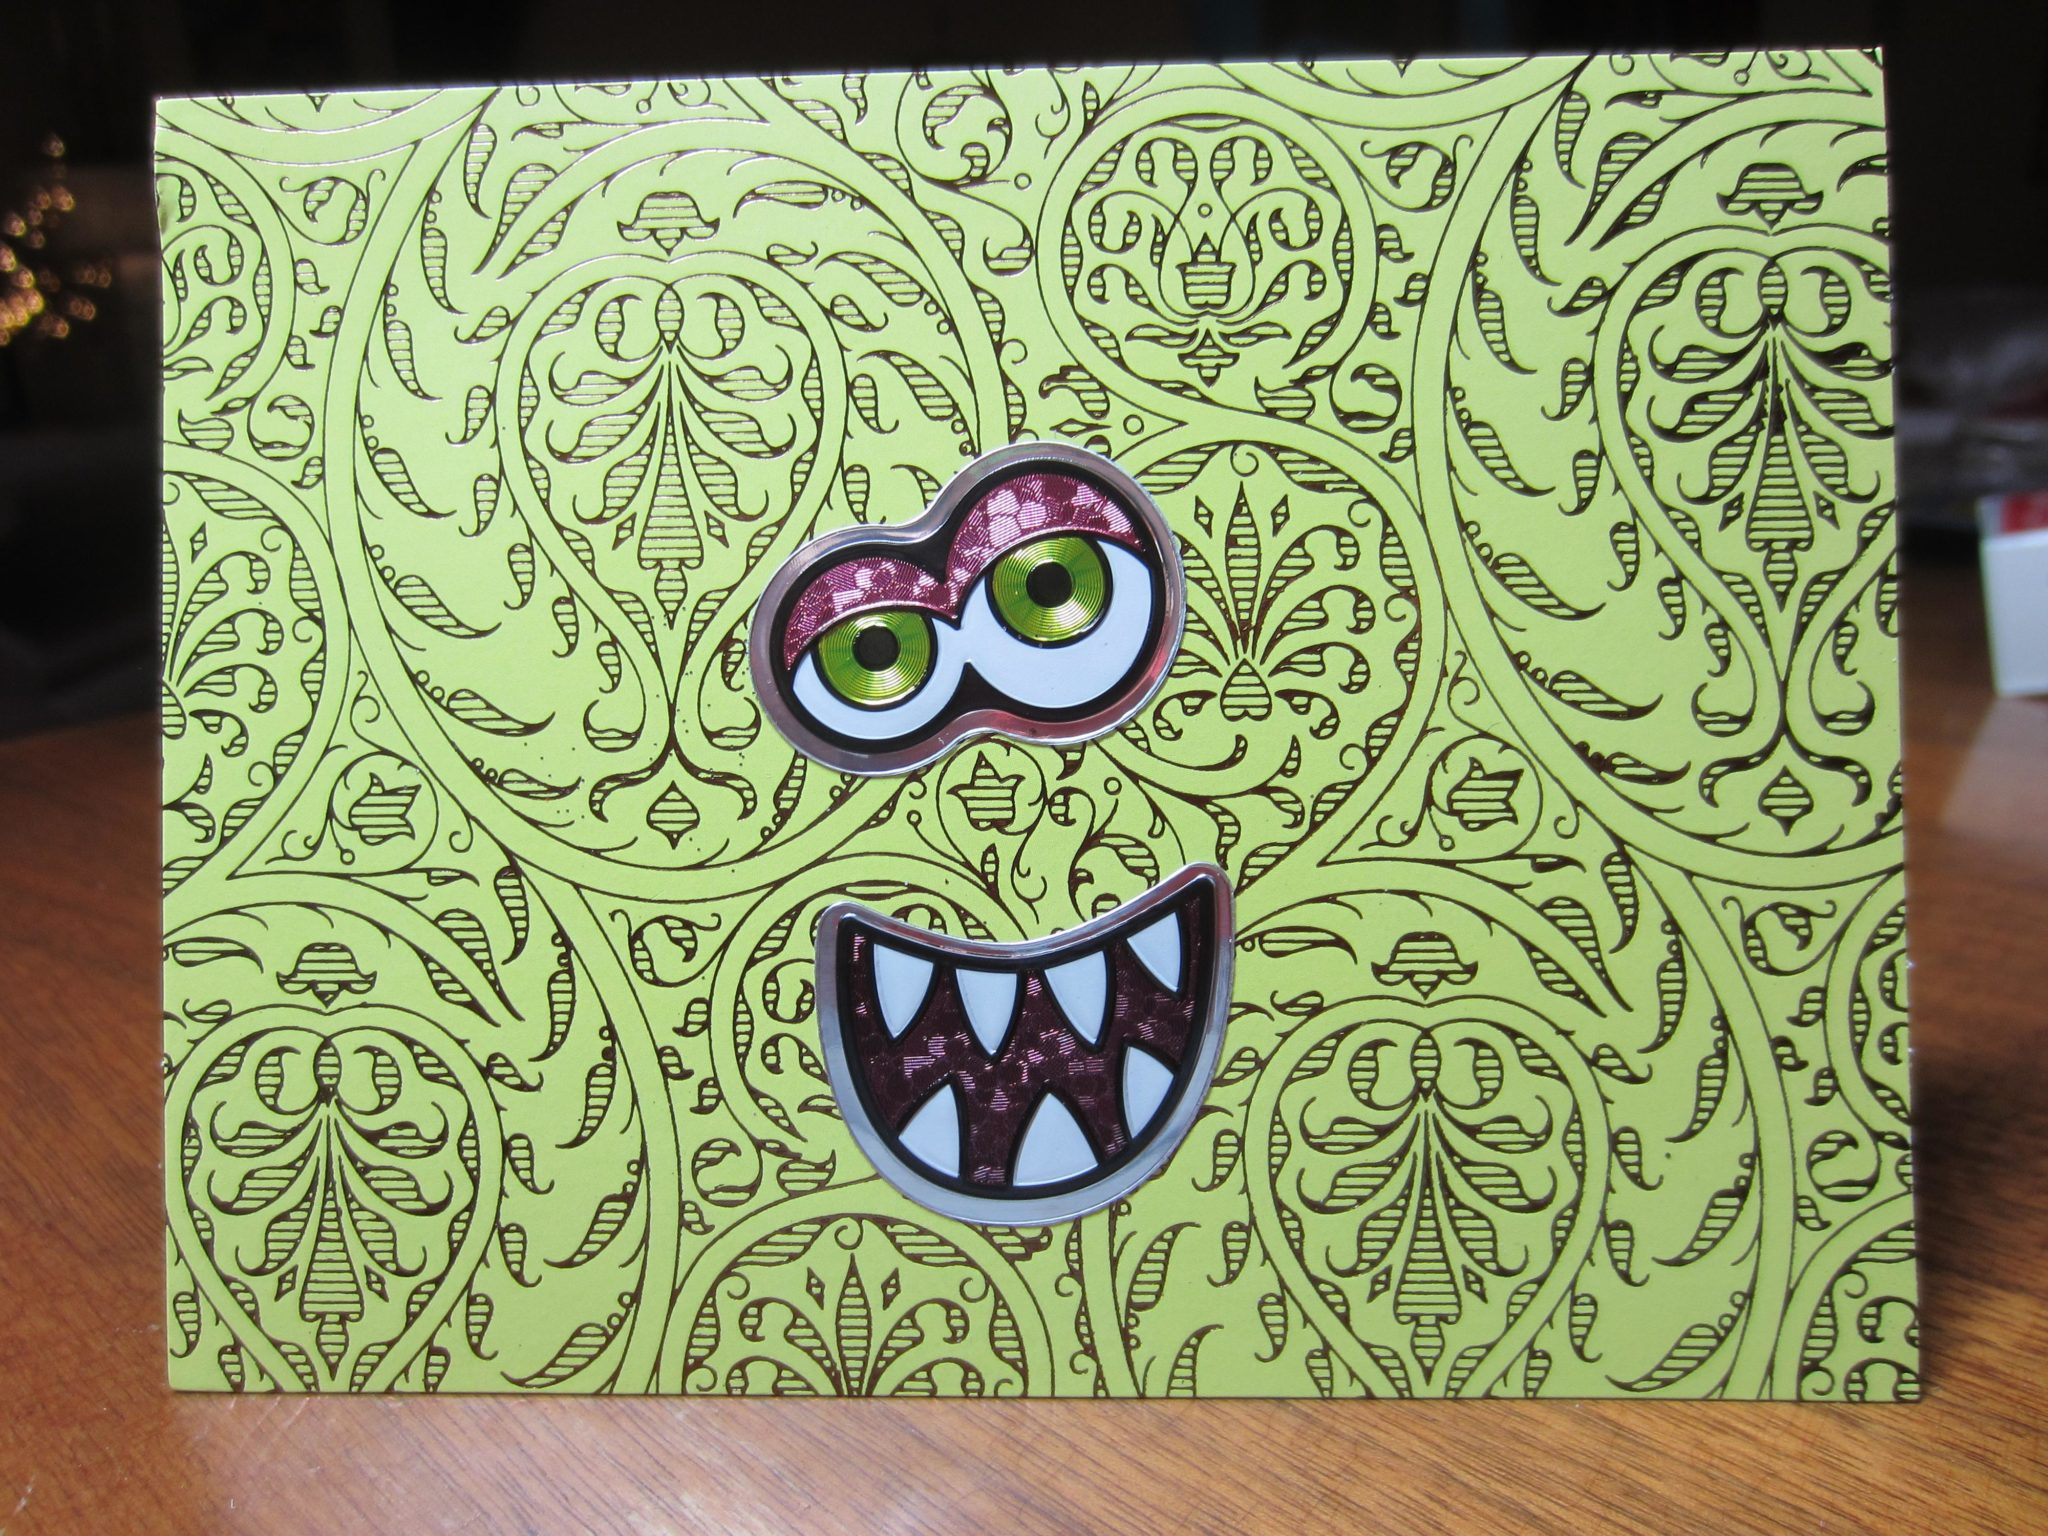 Ghoulish Halloween card – loved these stickers with different eyes and mouths!